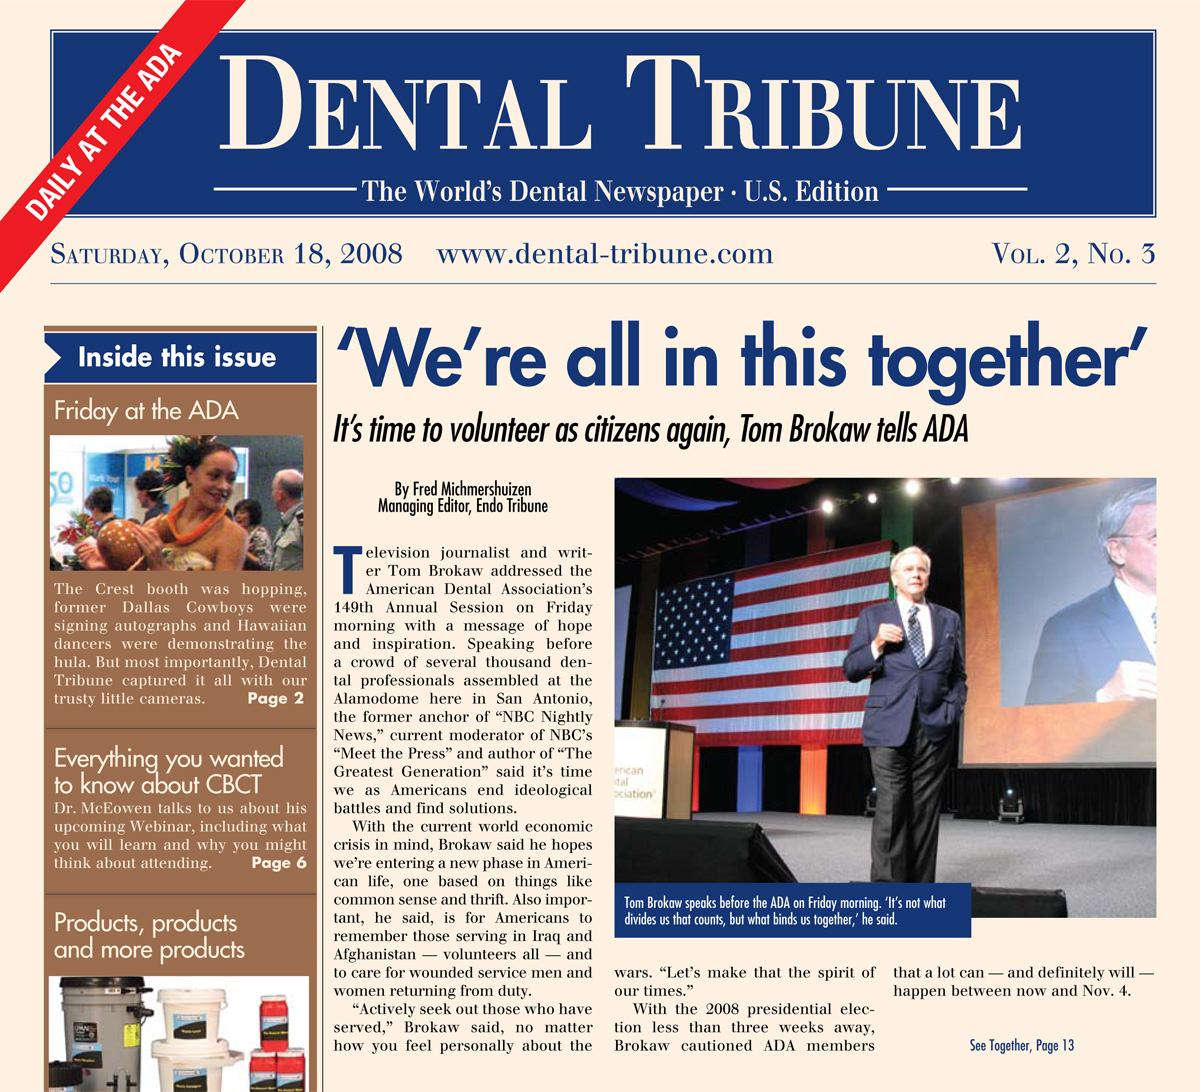 Fred Michmershuizen American Dental Association Tim Brokaw